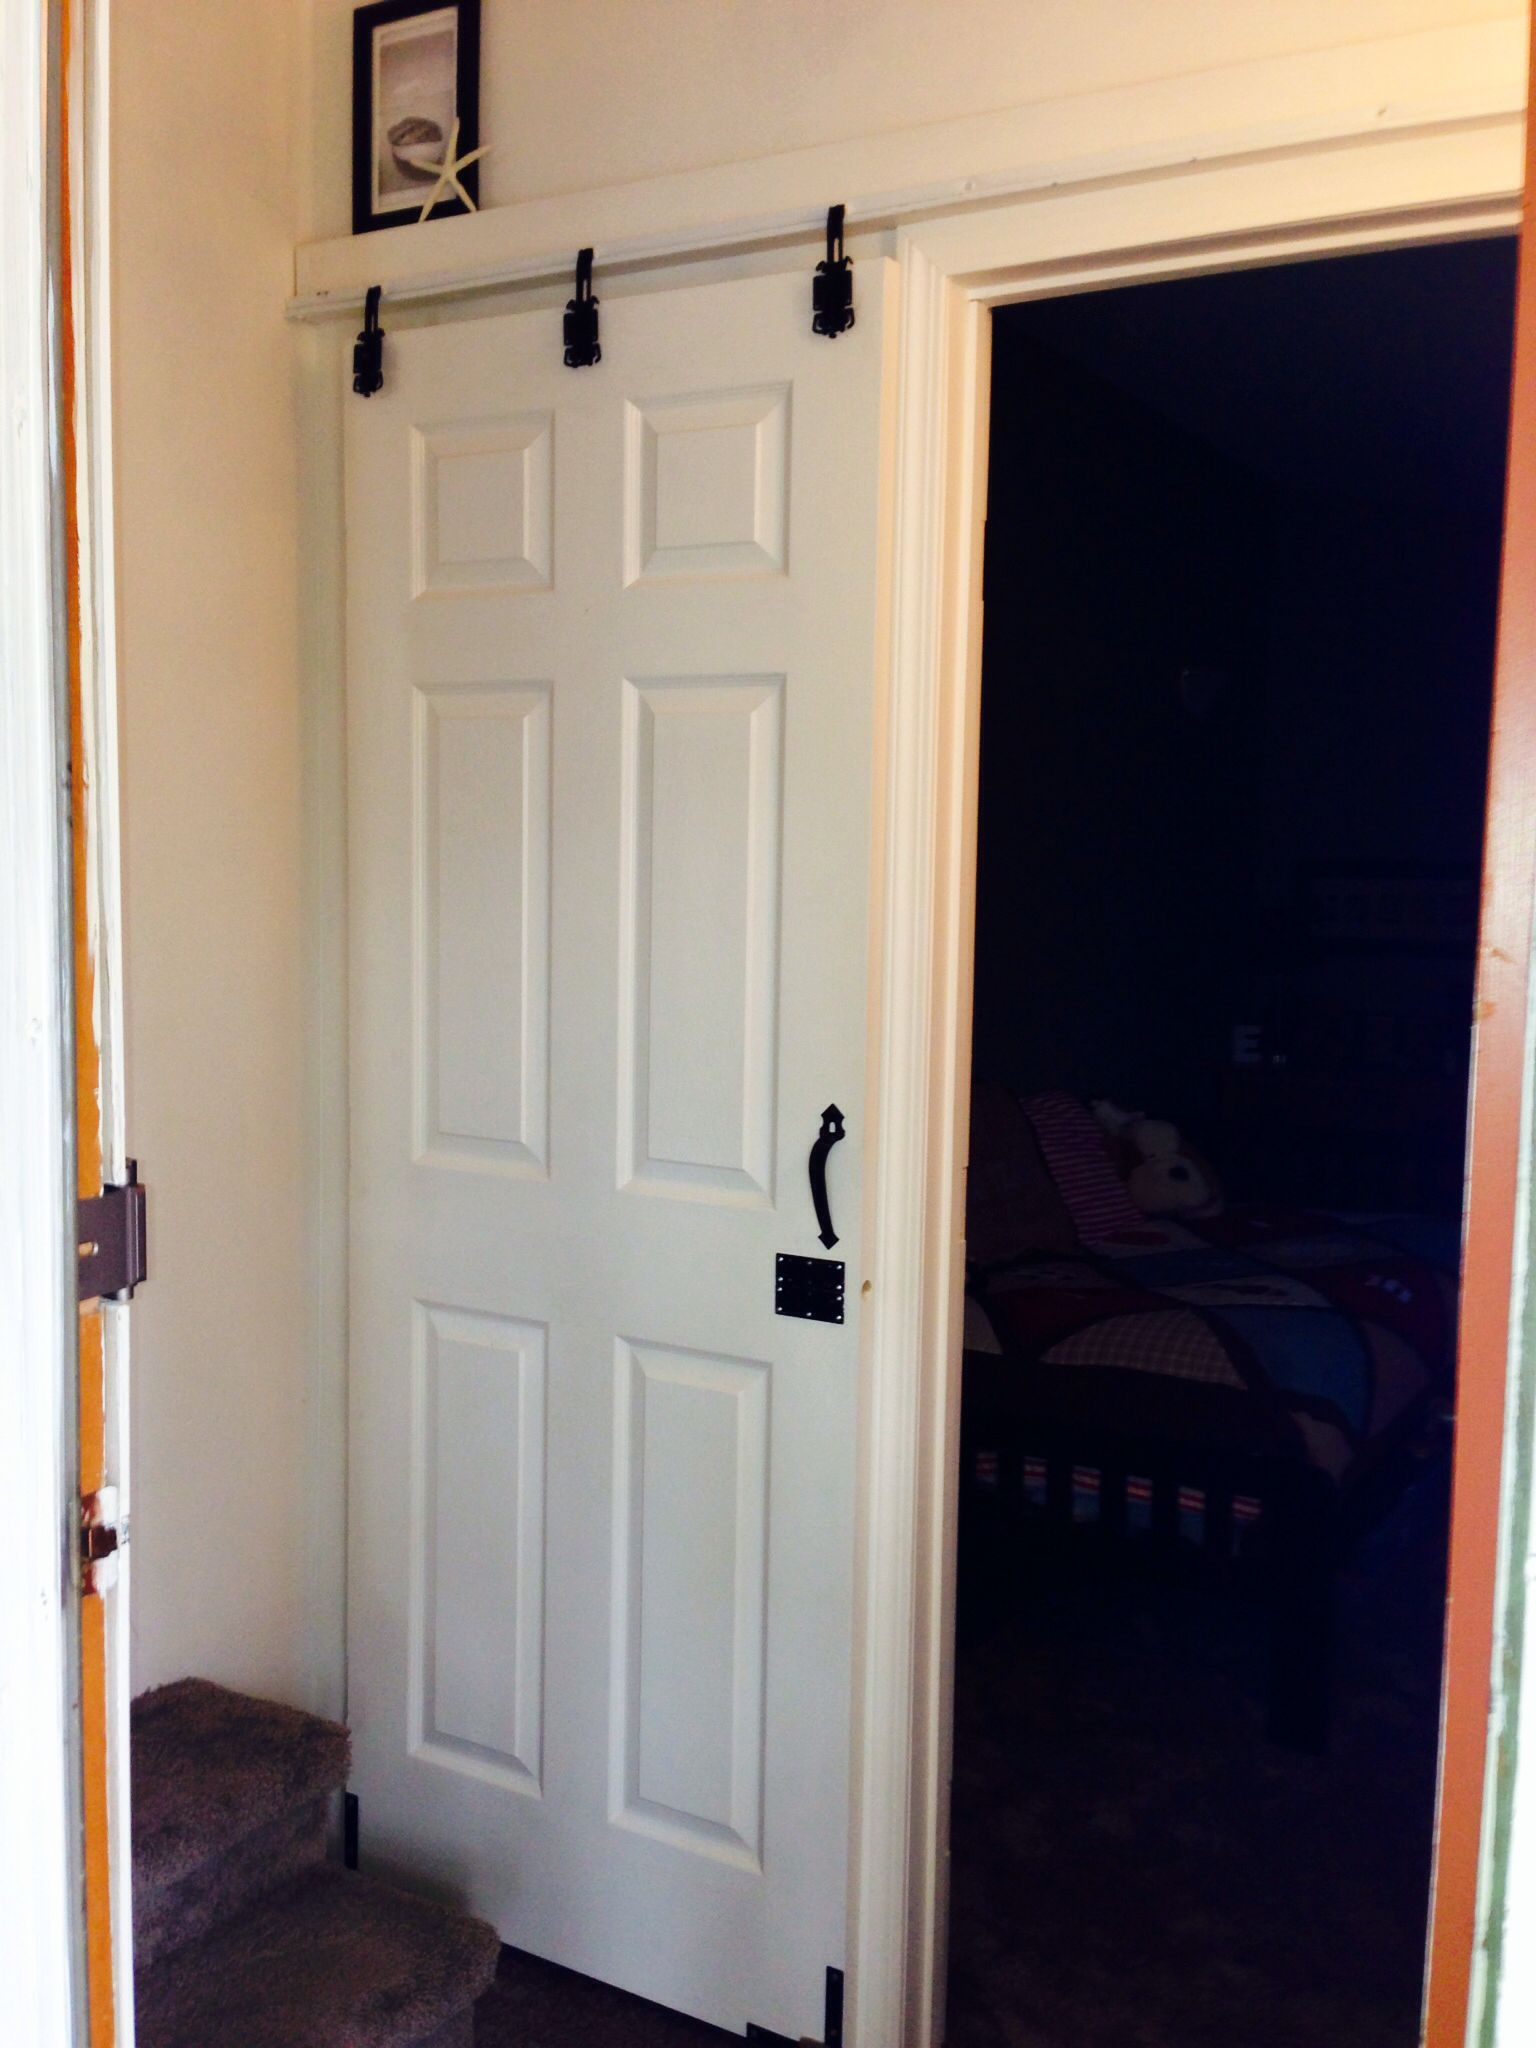 Sliding Hanging Door diy sliding door..cheap-o style that i did using $6 worth of